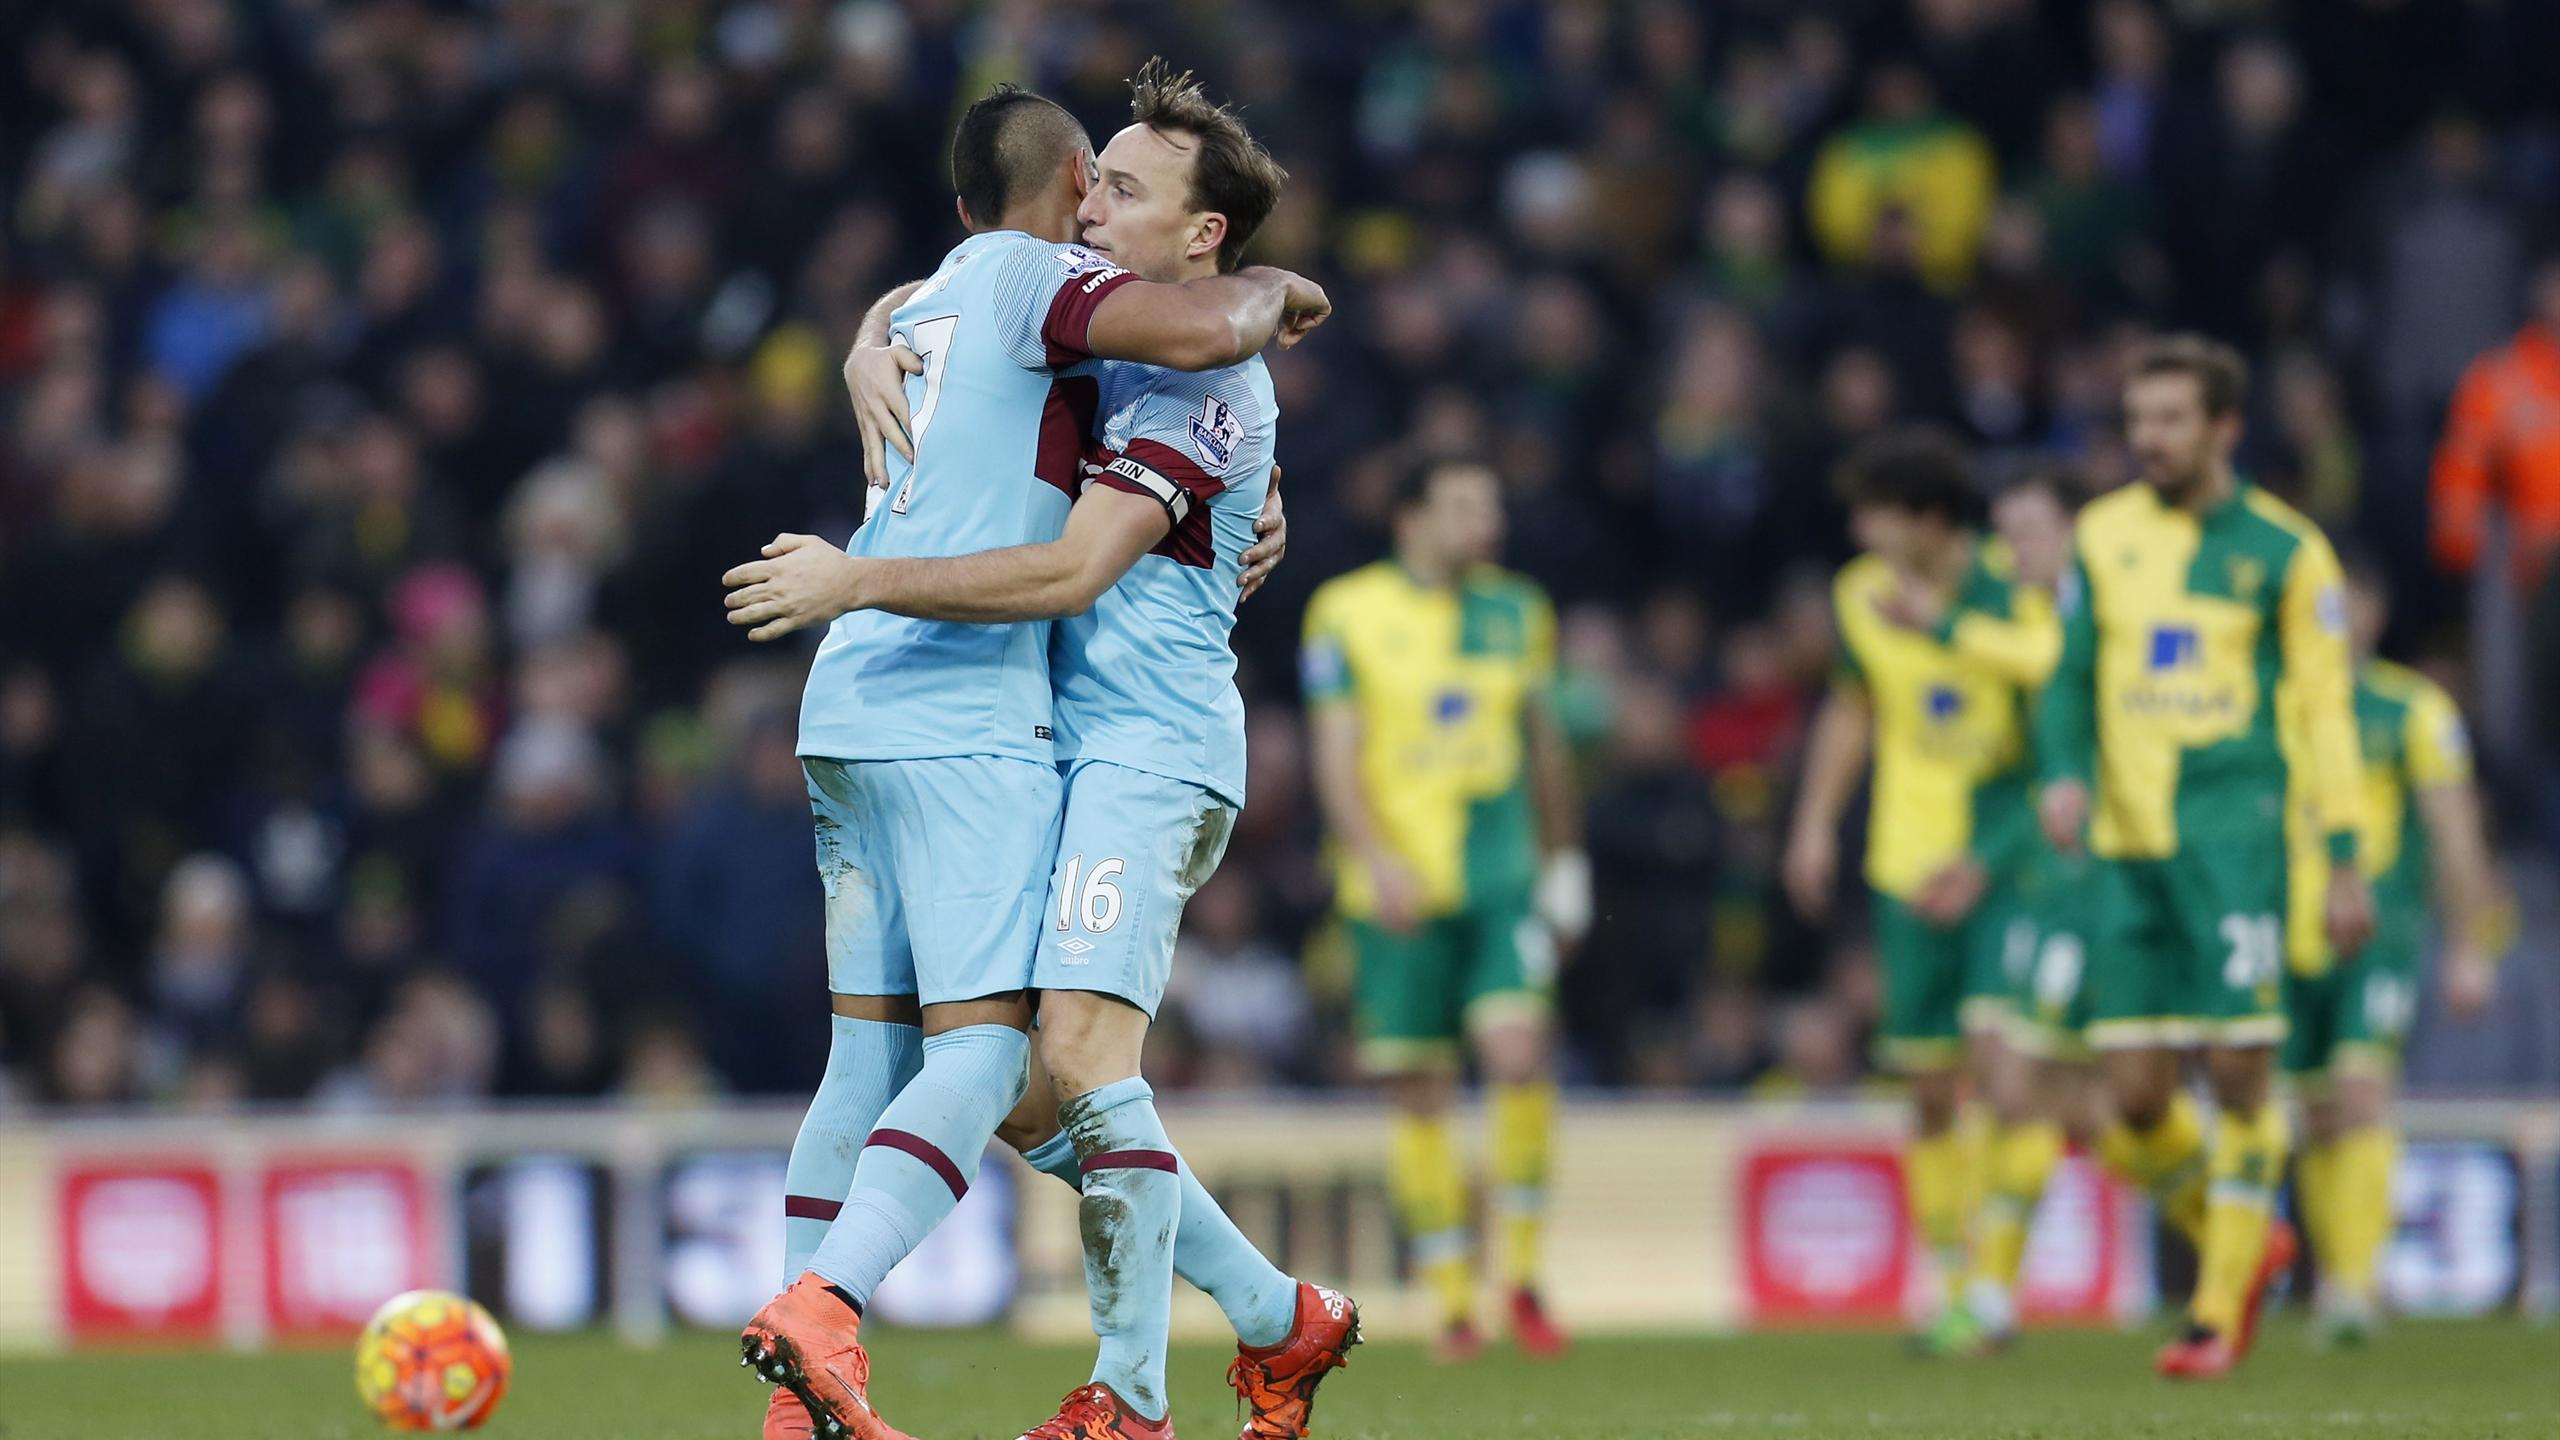 Mark Noble celebrates scoring the second goal for West Ham with Dimitri Payet